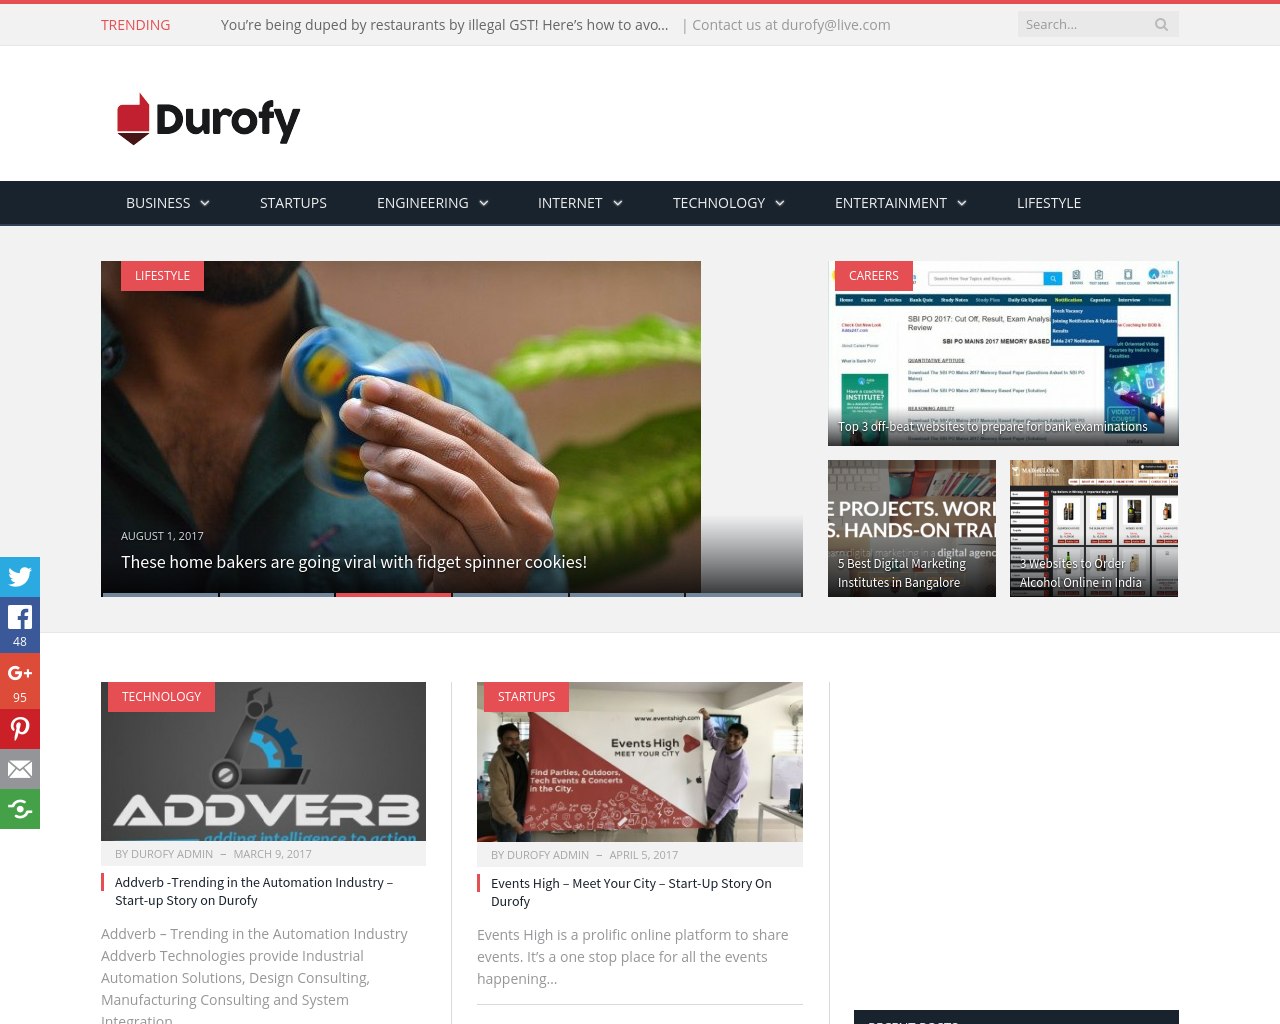 Durofy-Advertising-Reviews-Pricing